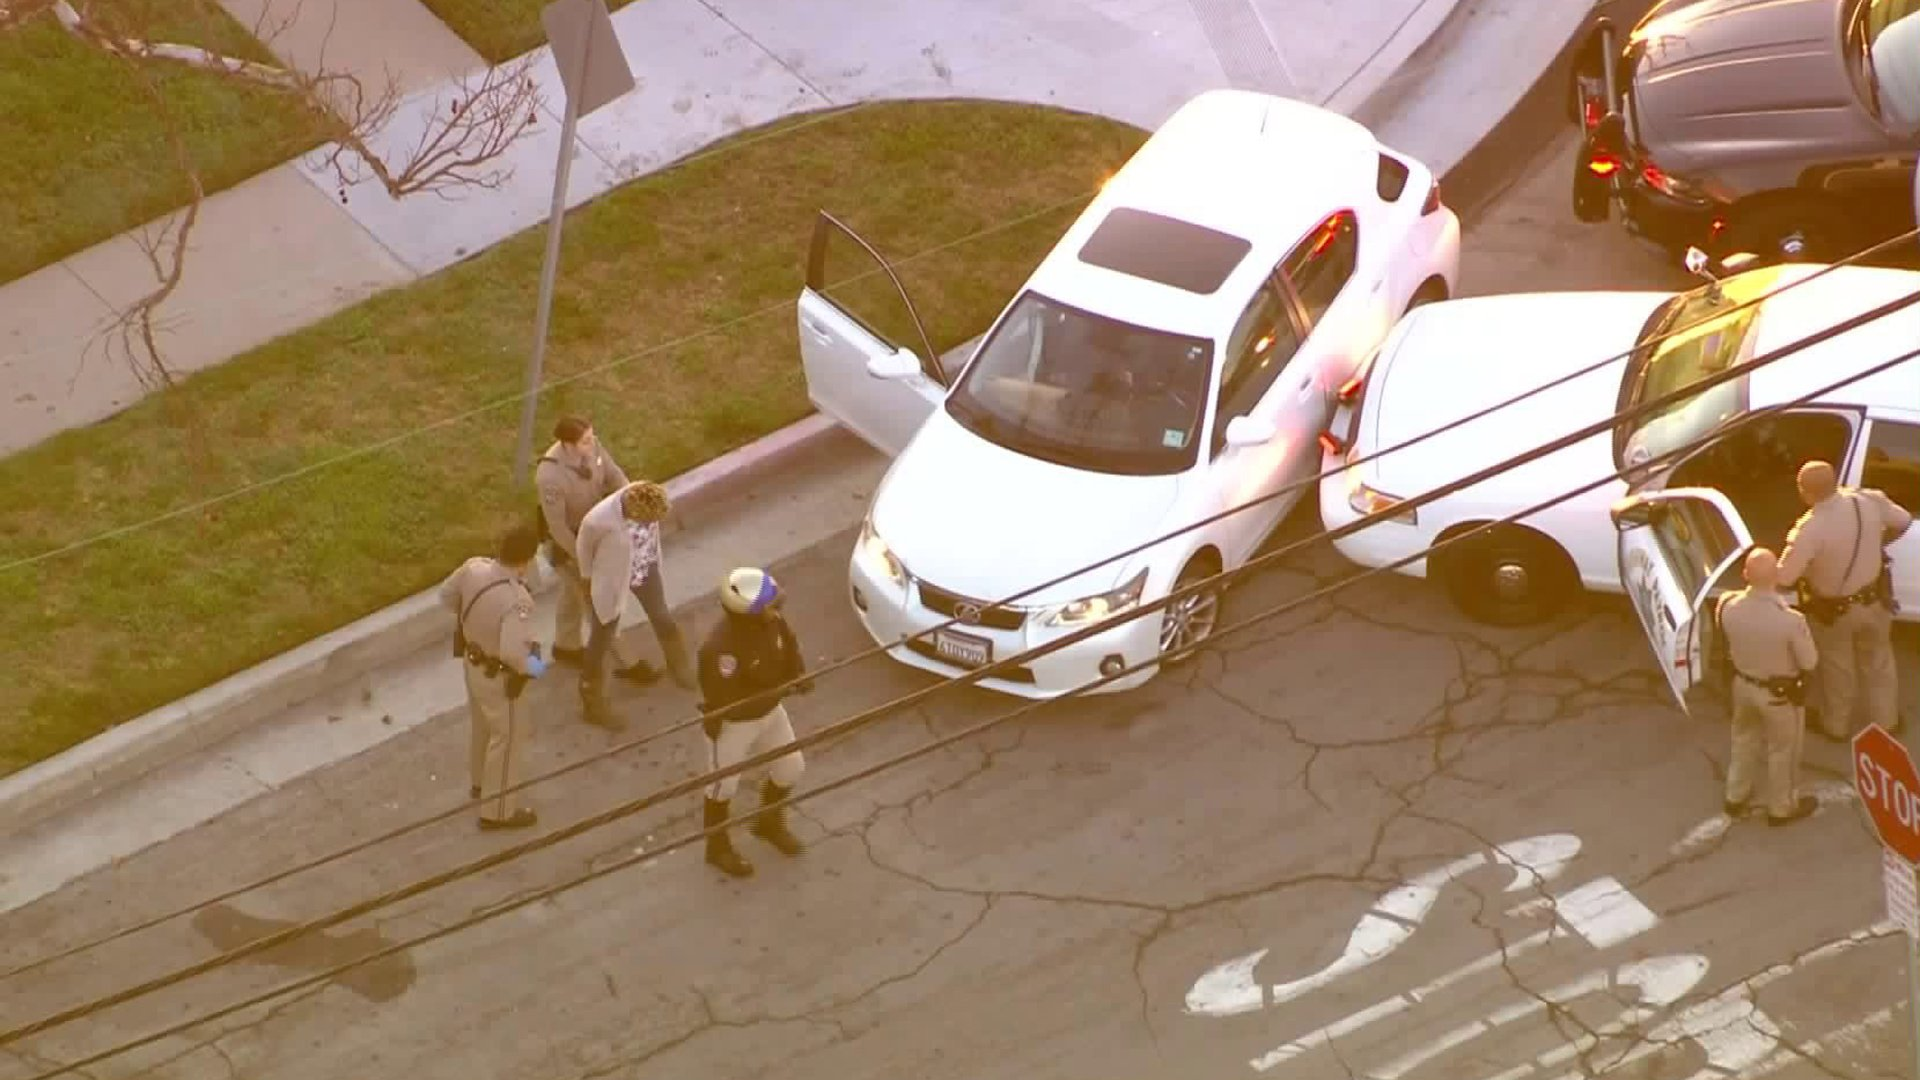 Officers detain a driver in Long Beach following a pursuit on Feb. 11, 2020. (Credit: Sky5)